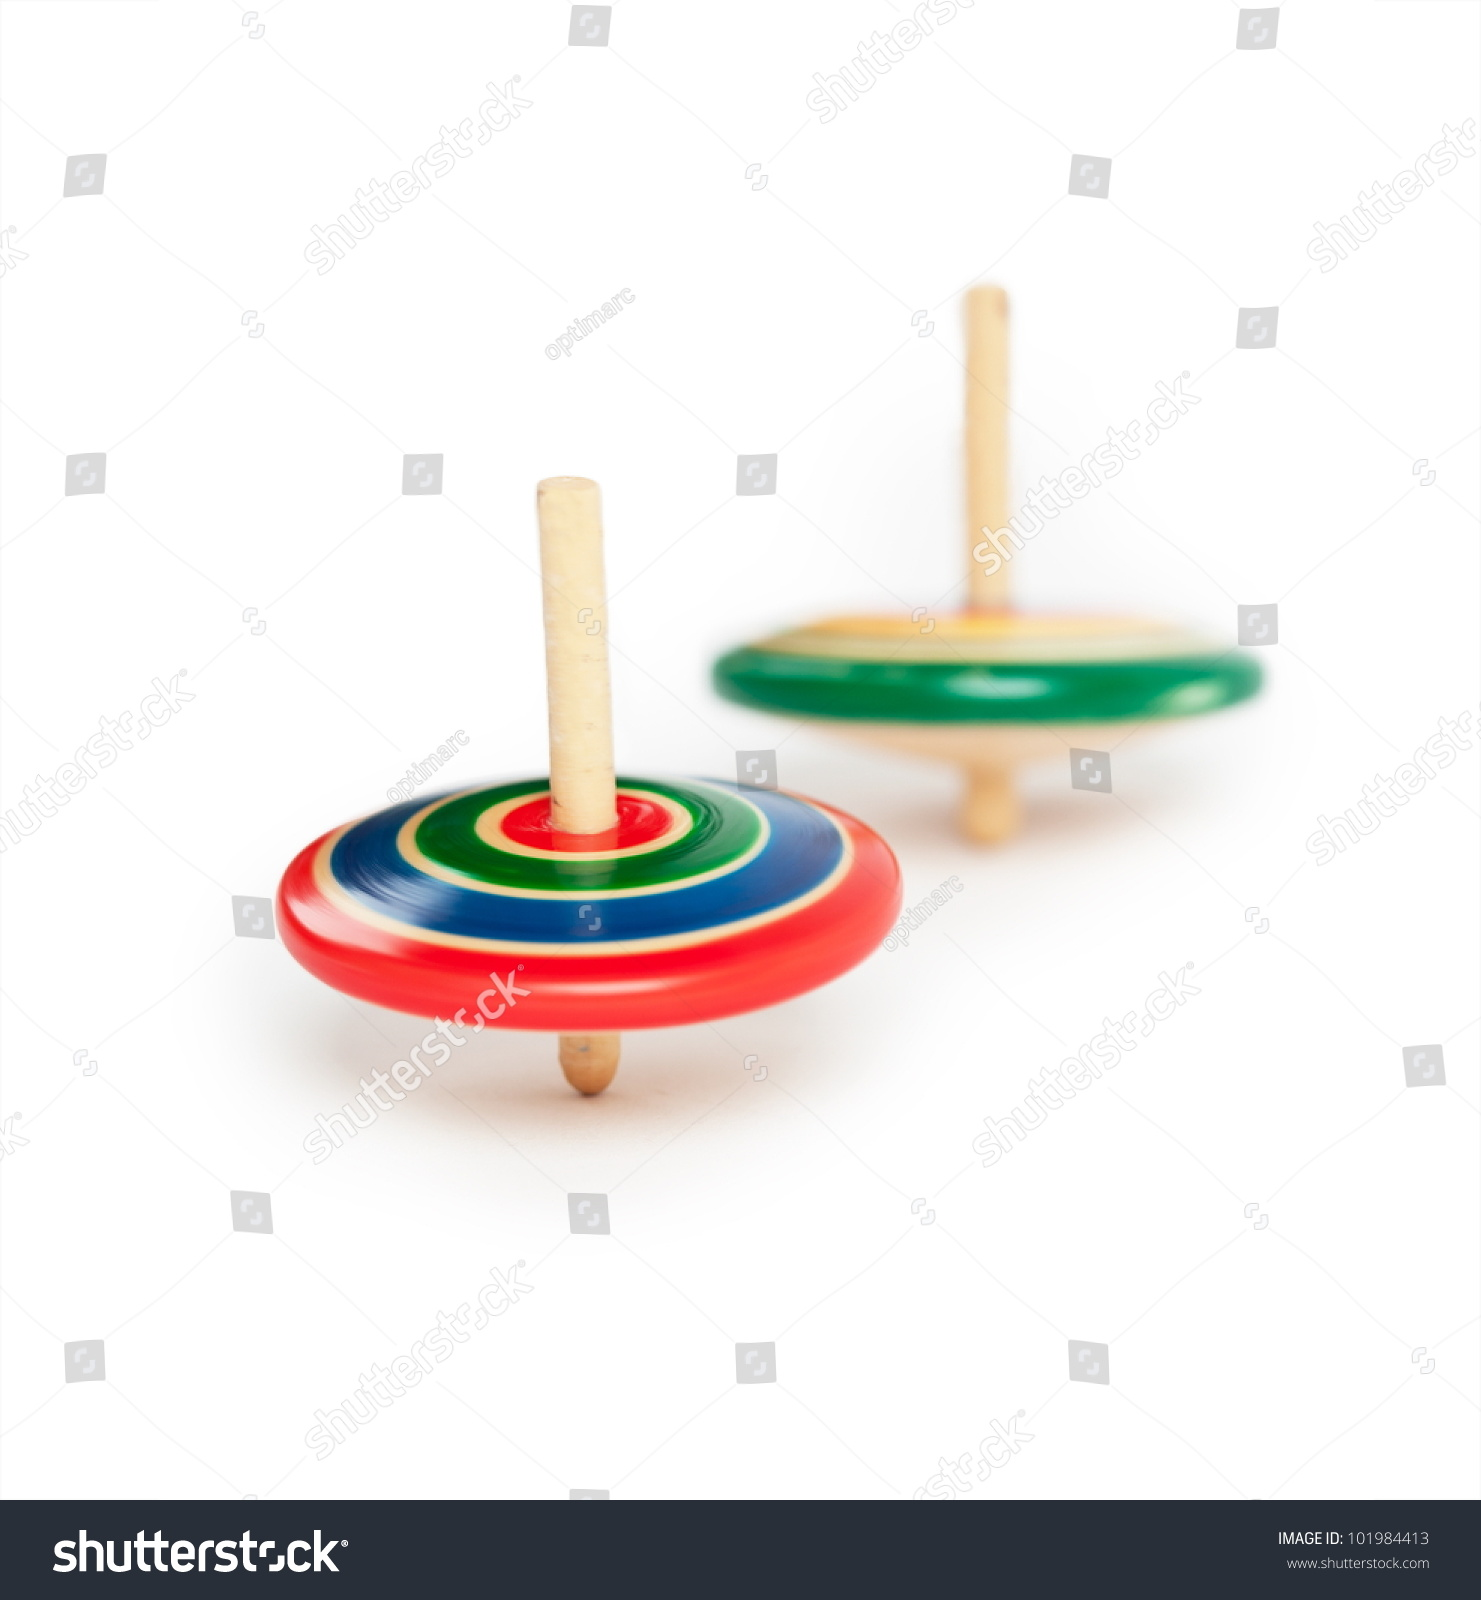 wooden top isolated - photo #46